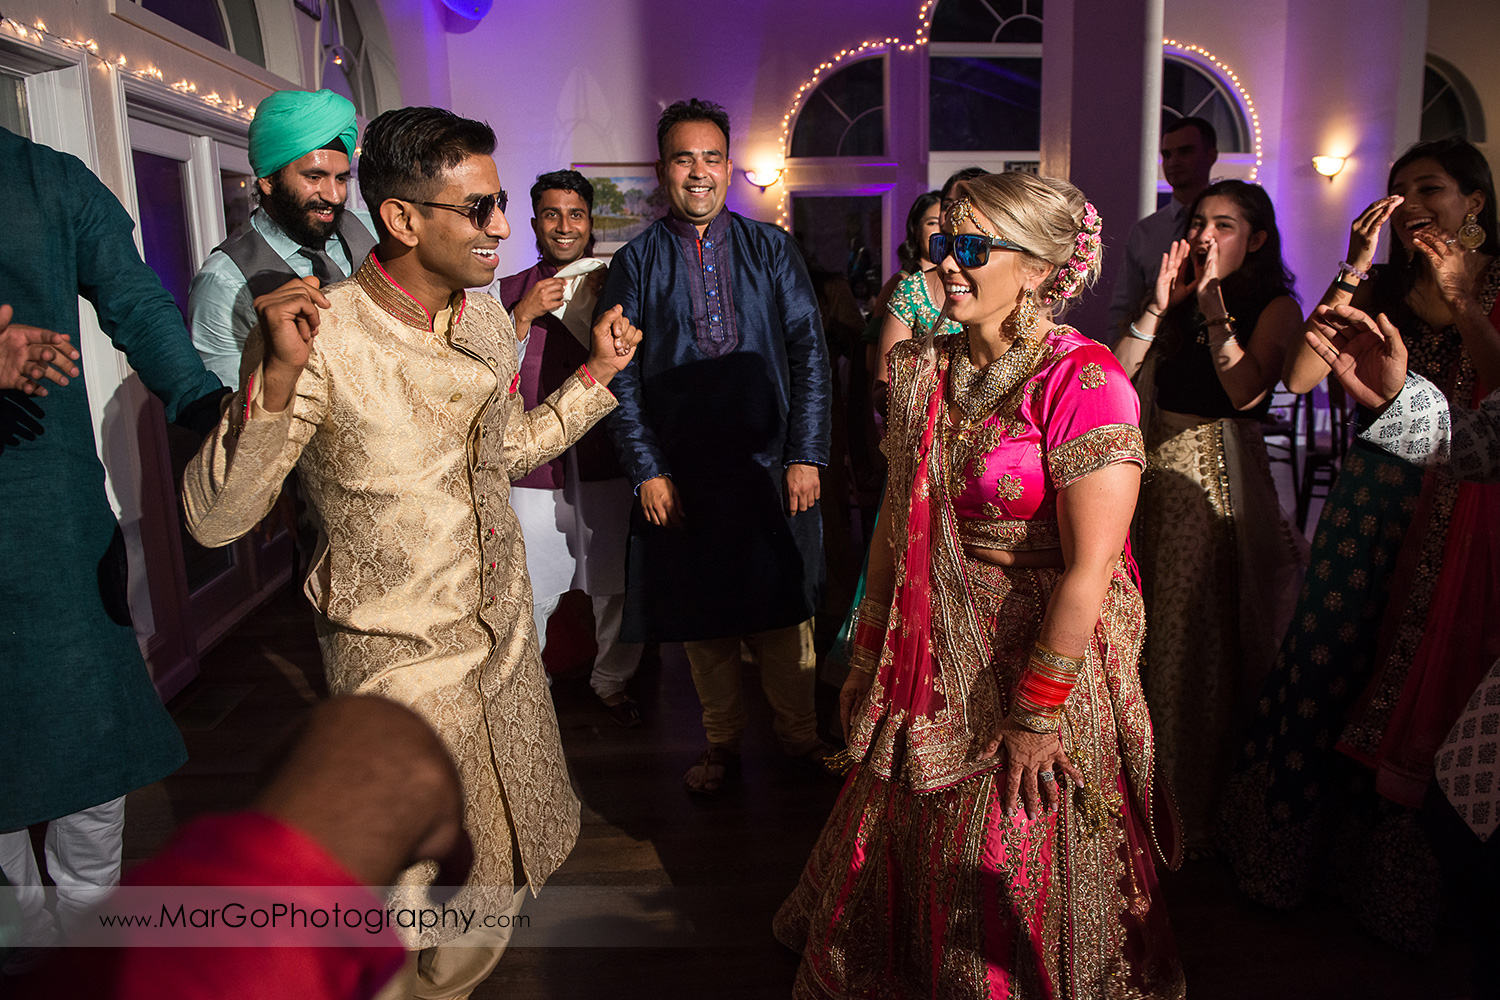 Indian bride and groom dancing durng wedding reception at Elliston Vineyards in Sunol